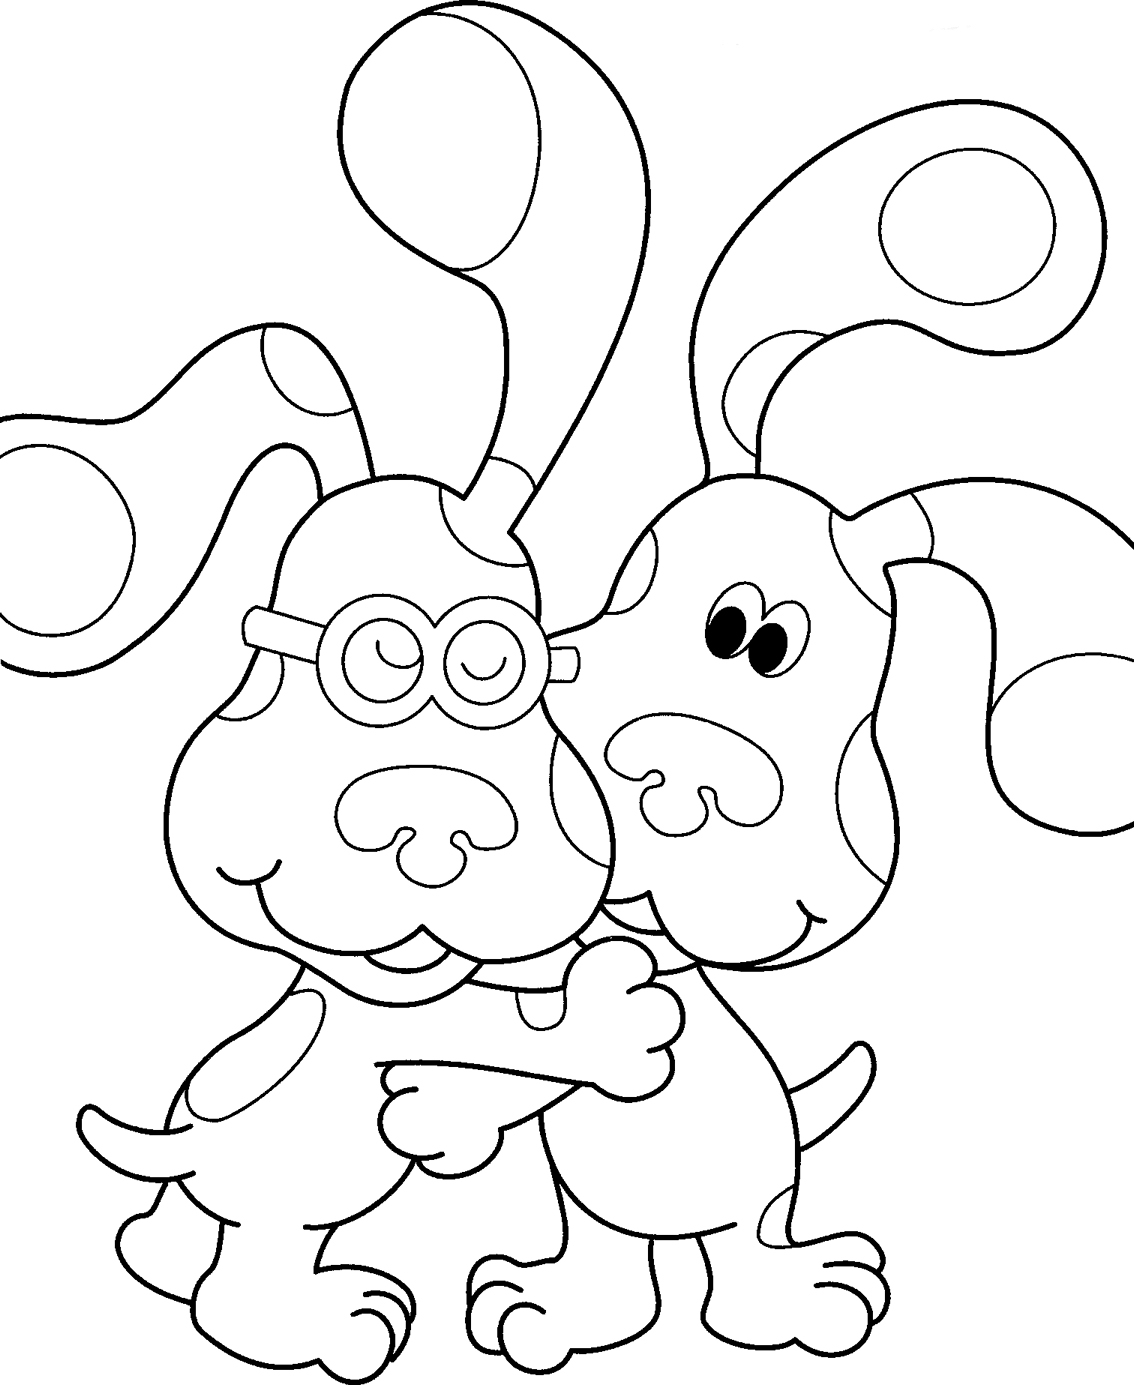 This is a picture of Luscious Blues Clues Coloring Pages